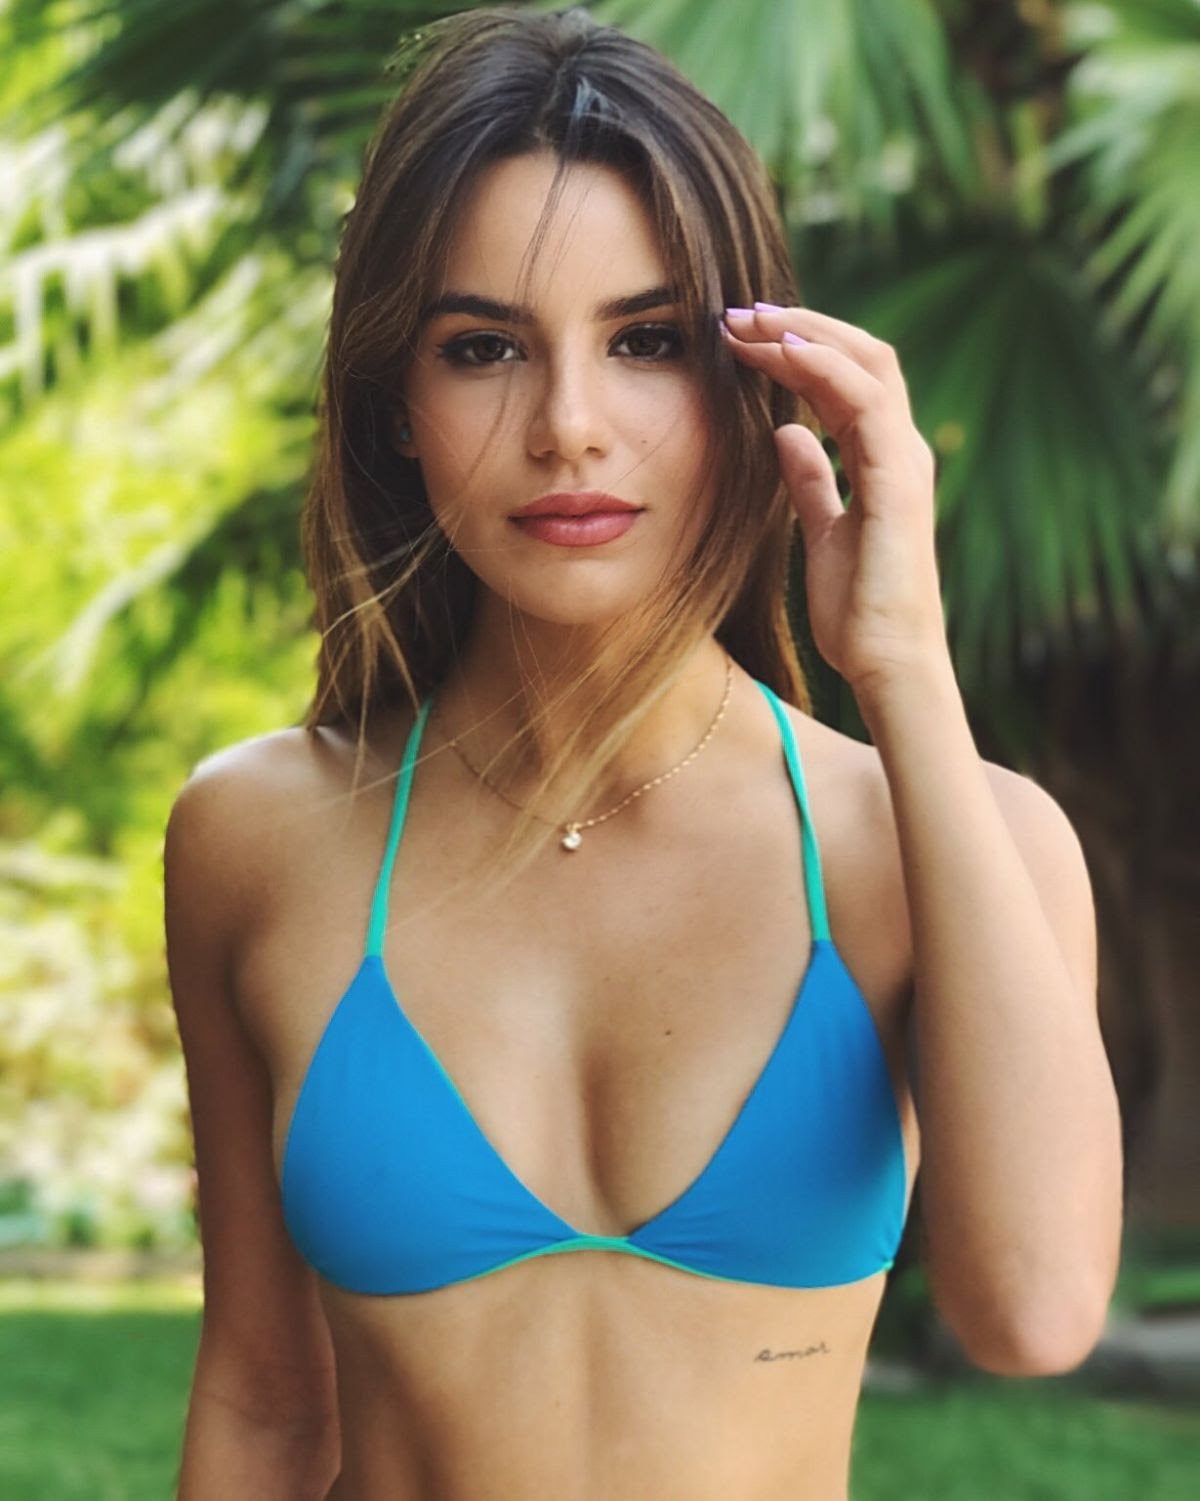 MADISON REED in Bikini Top, 06/25/2017 Instagram Picture